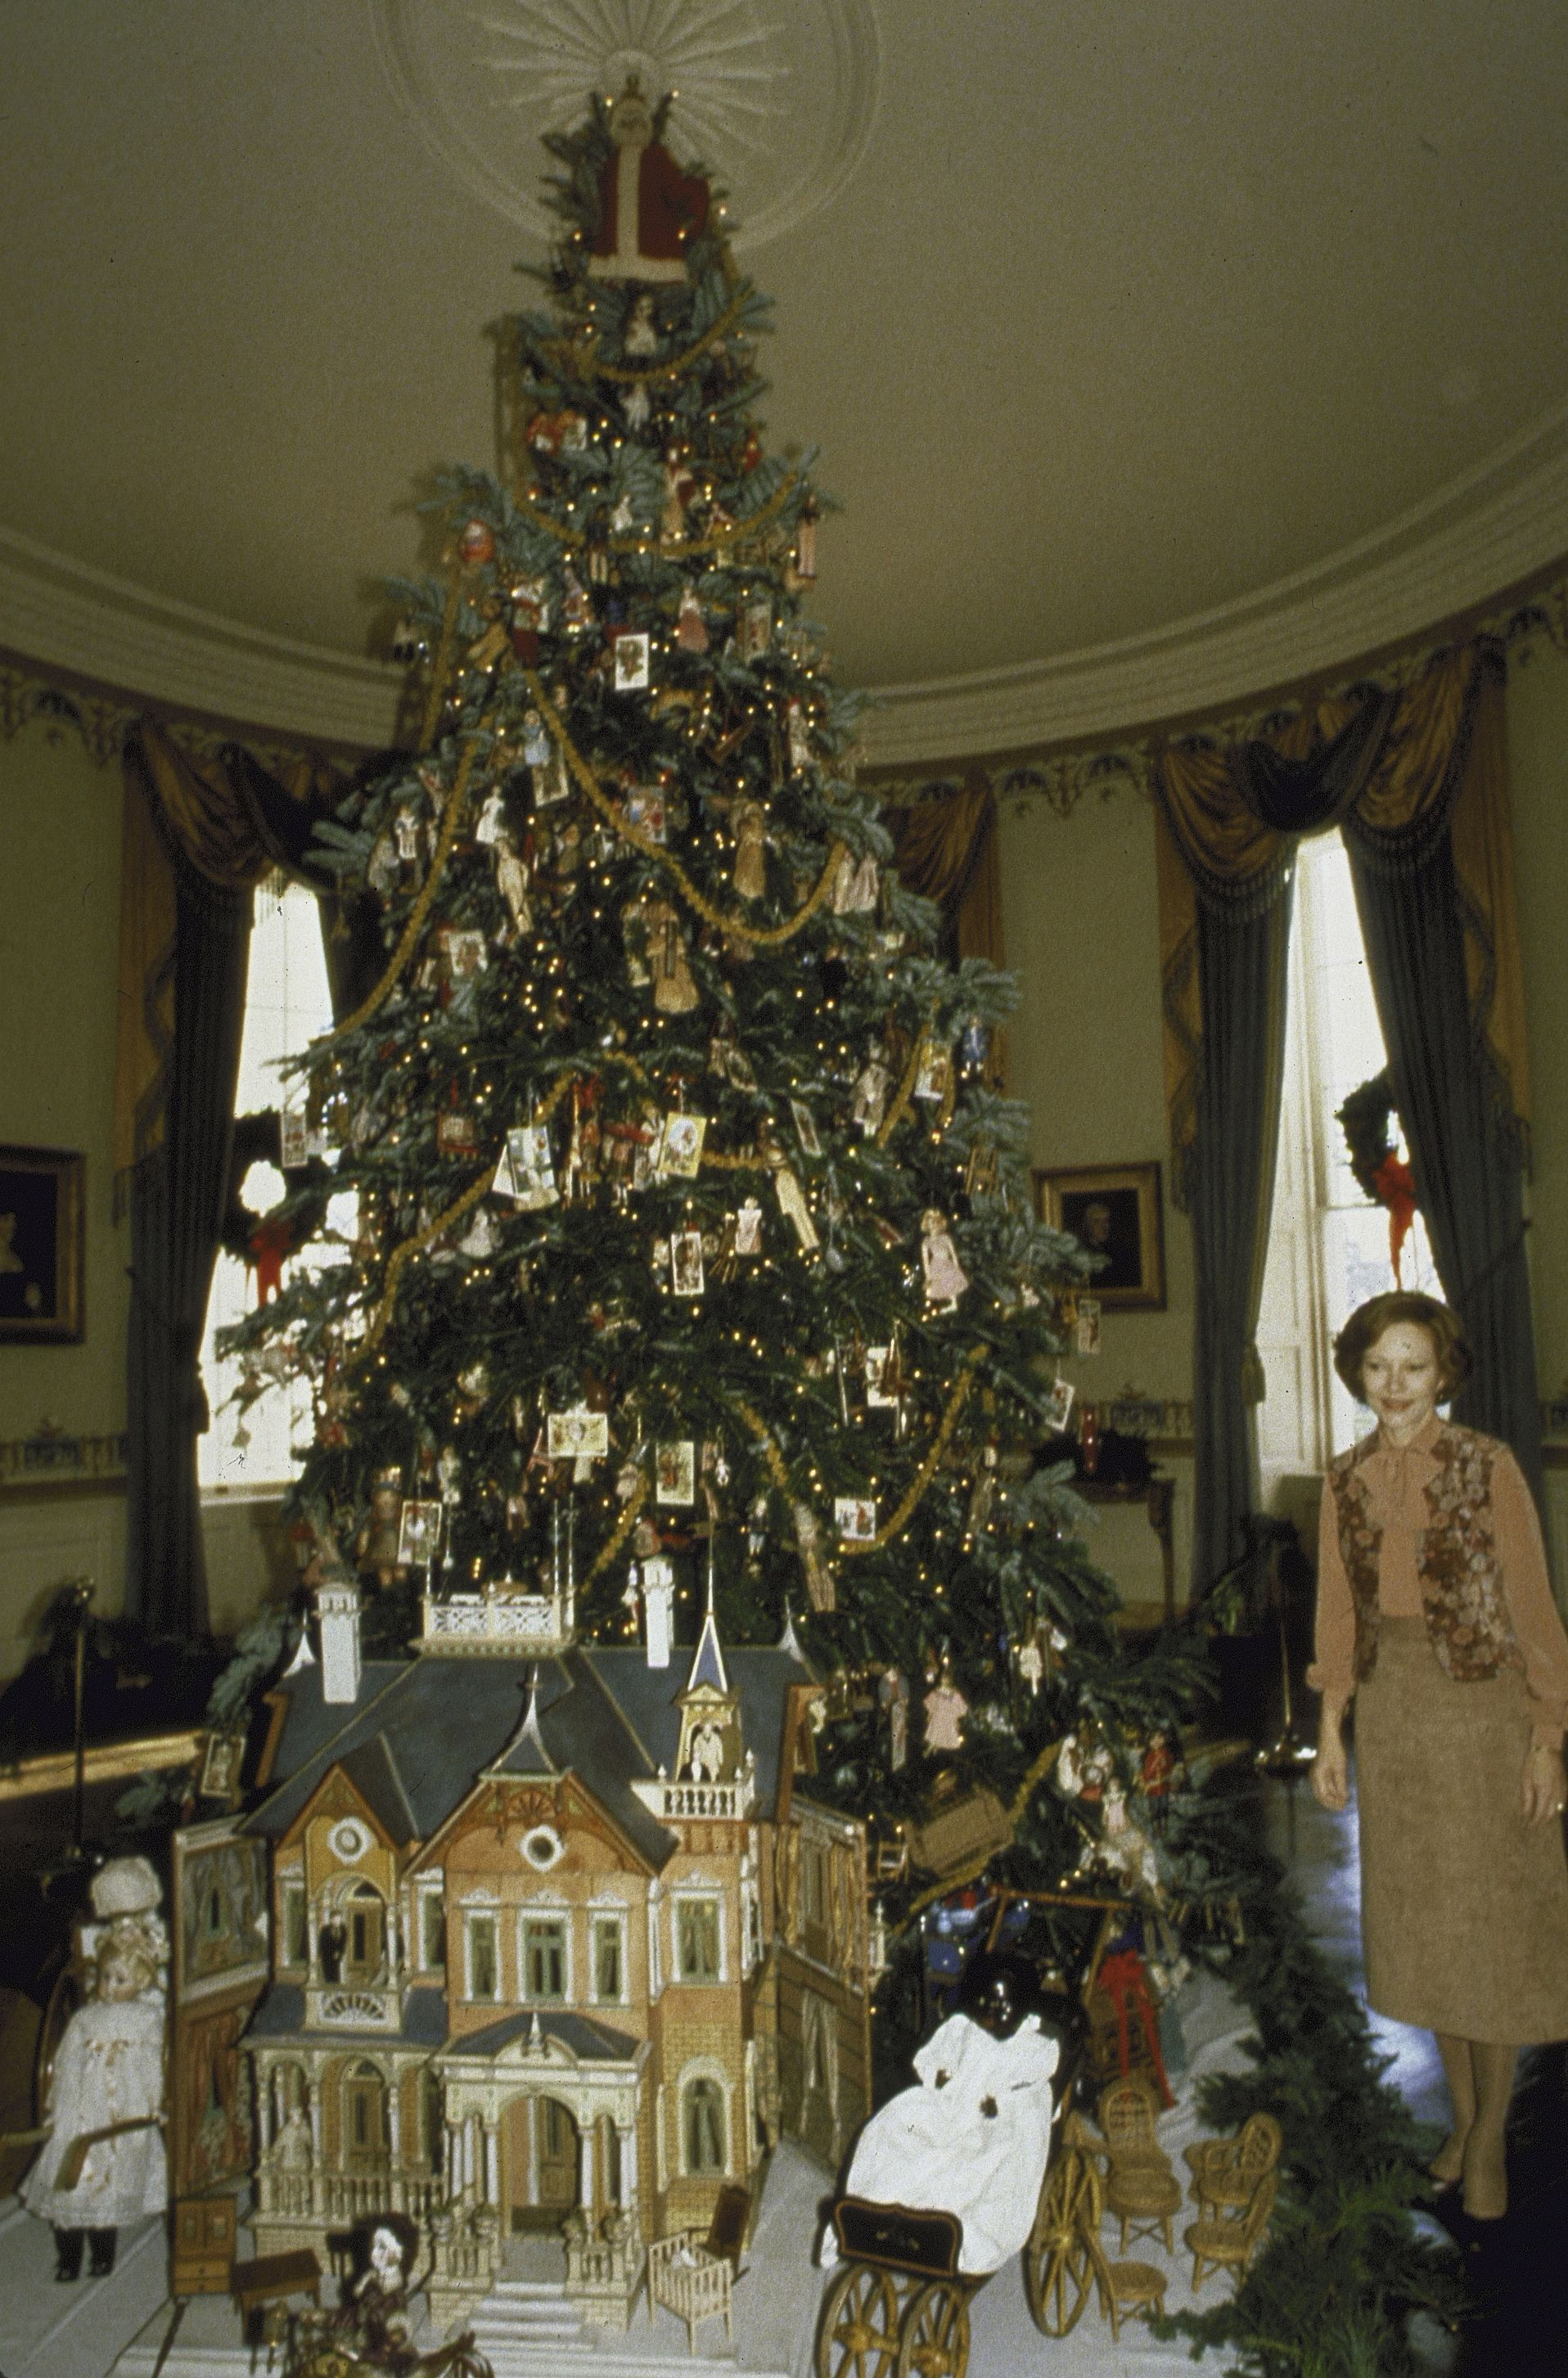 Whitehouse Christmas Decorations.A Timeline Of White House Christmas Decorations Through The